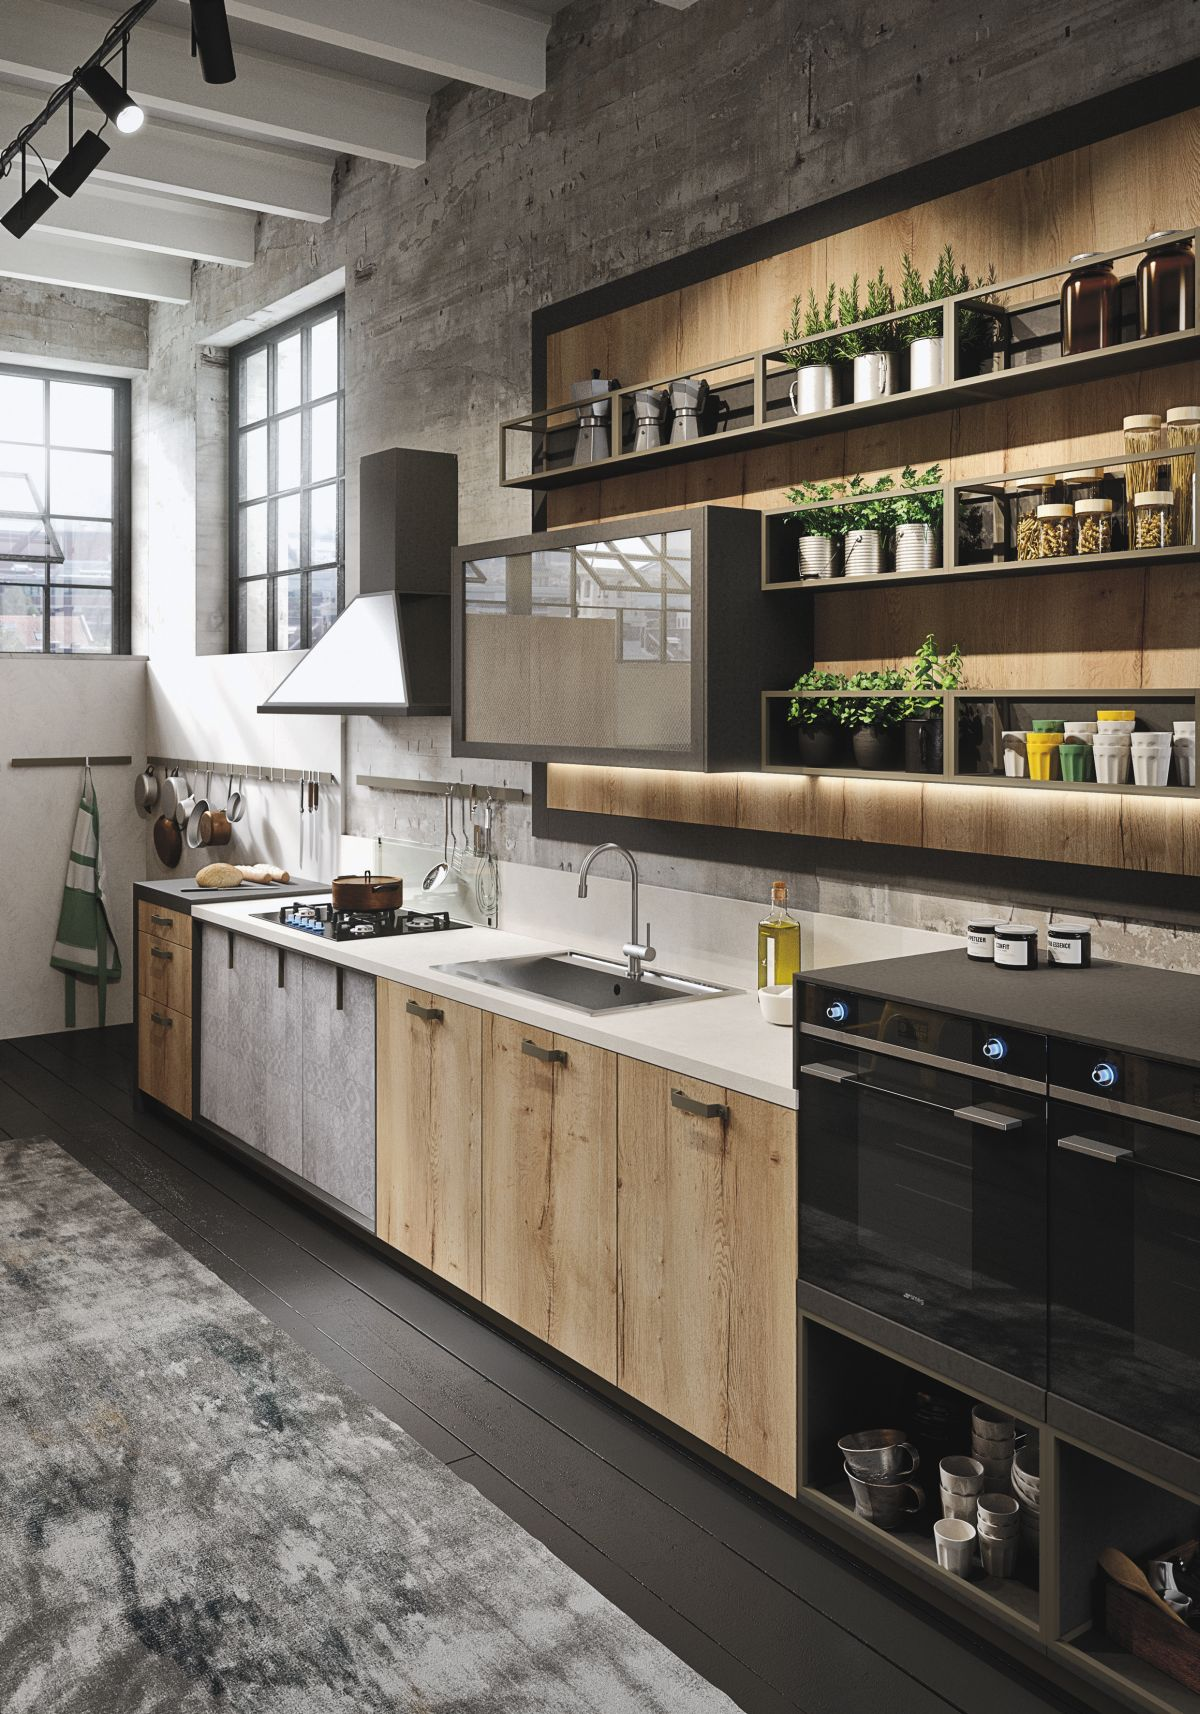 Industiral and rustic loft kitchen by snaidero digsdigs for Industrial style kitchen